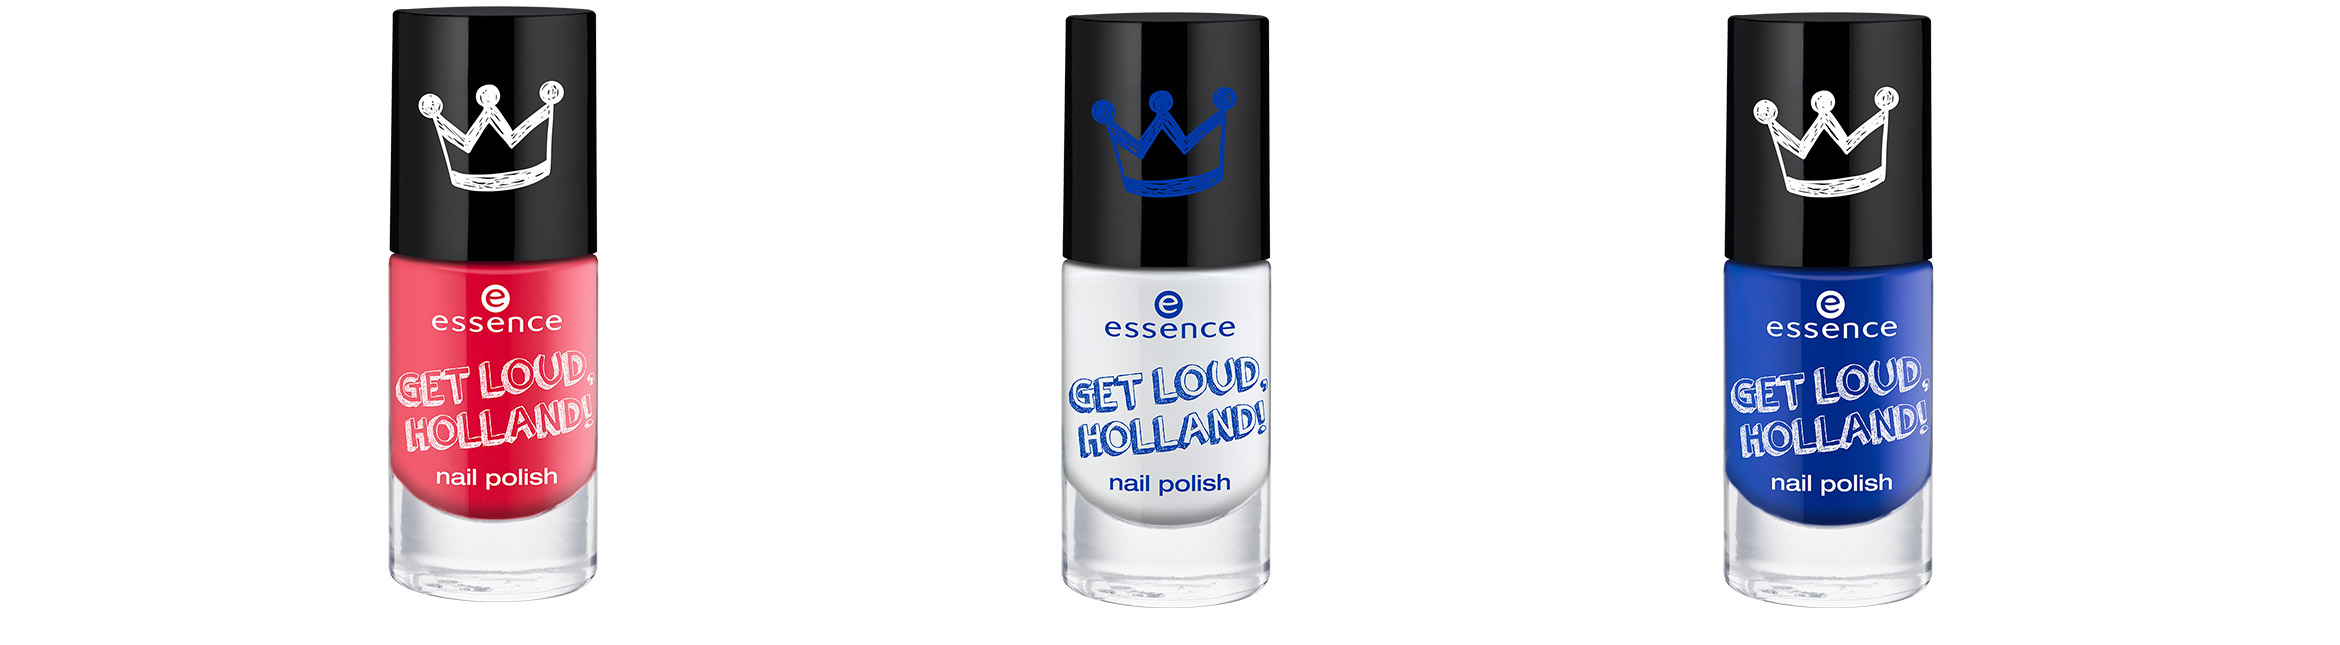 Essence-get-loud-holland-nagellak